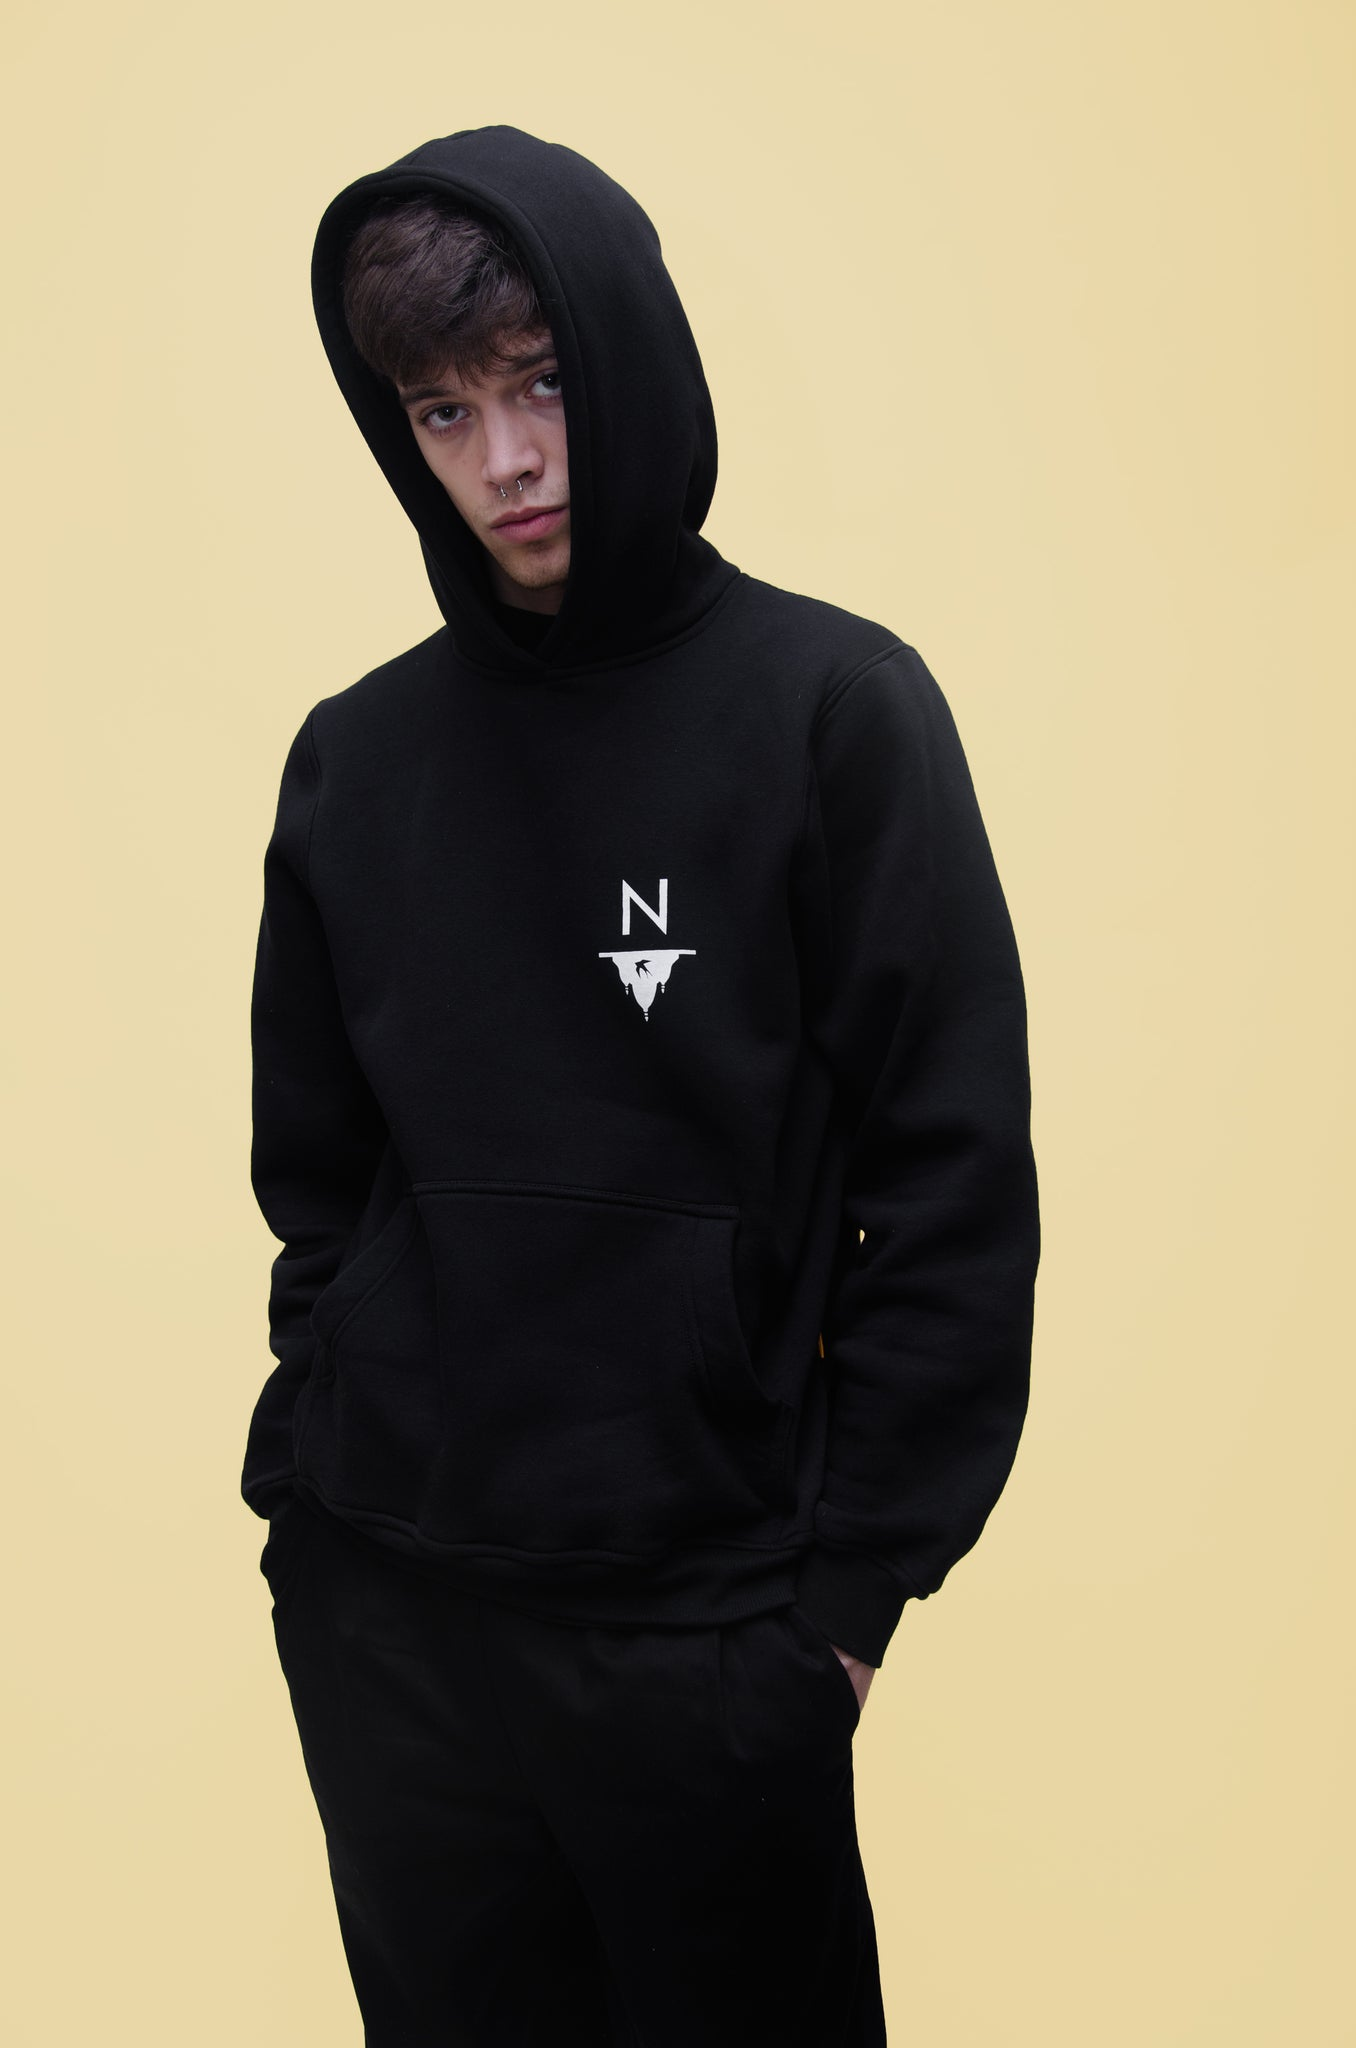 The North Hill Tour Hoodie is a made in France sweatshirt